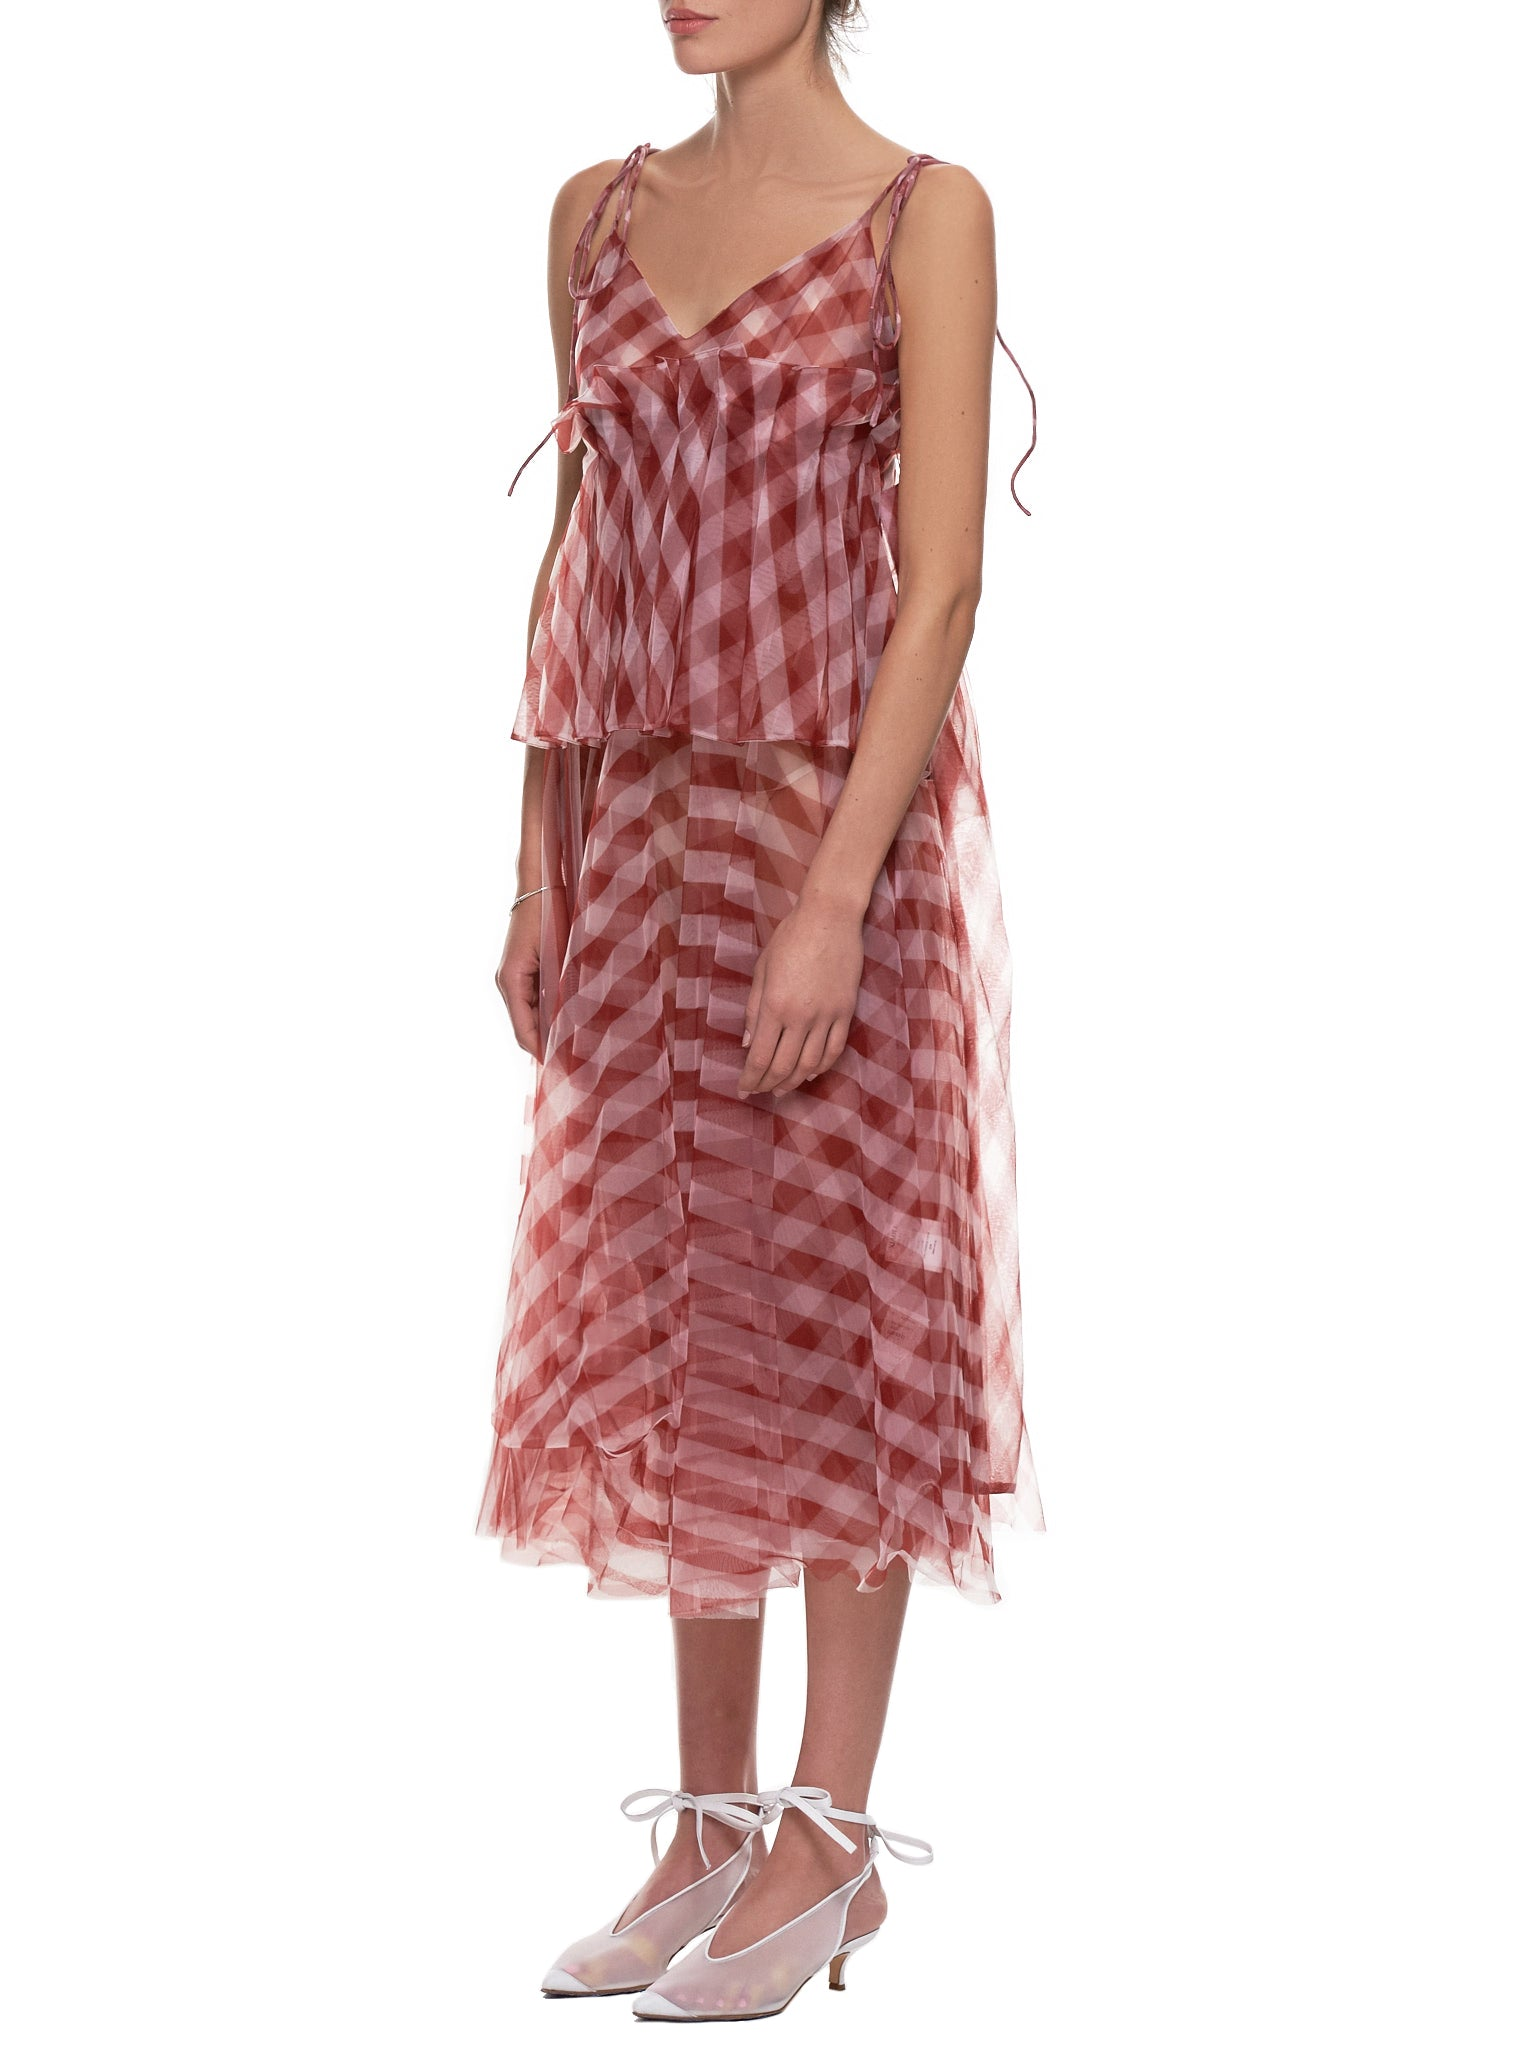 Gingham Dress (011-RED-WHITE)